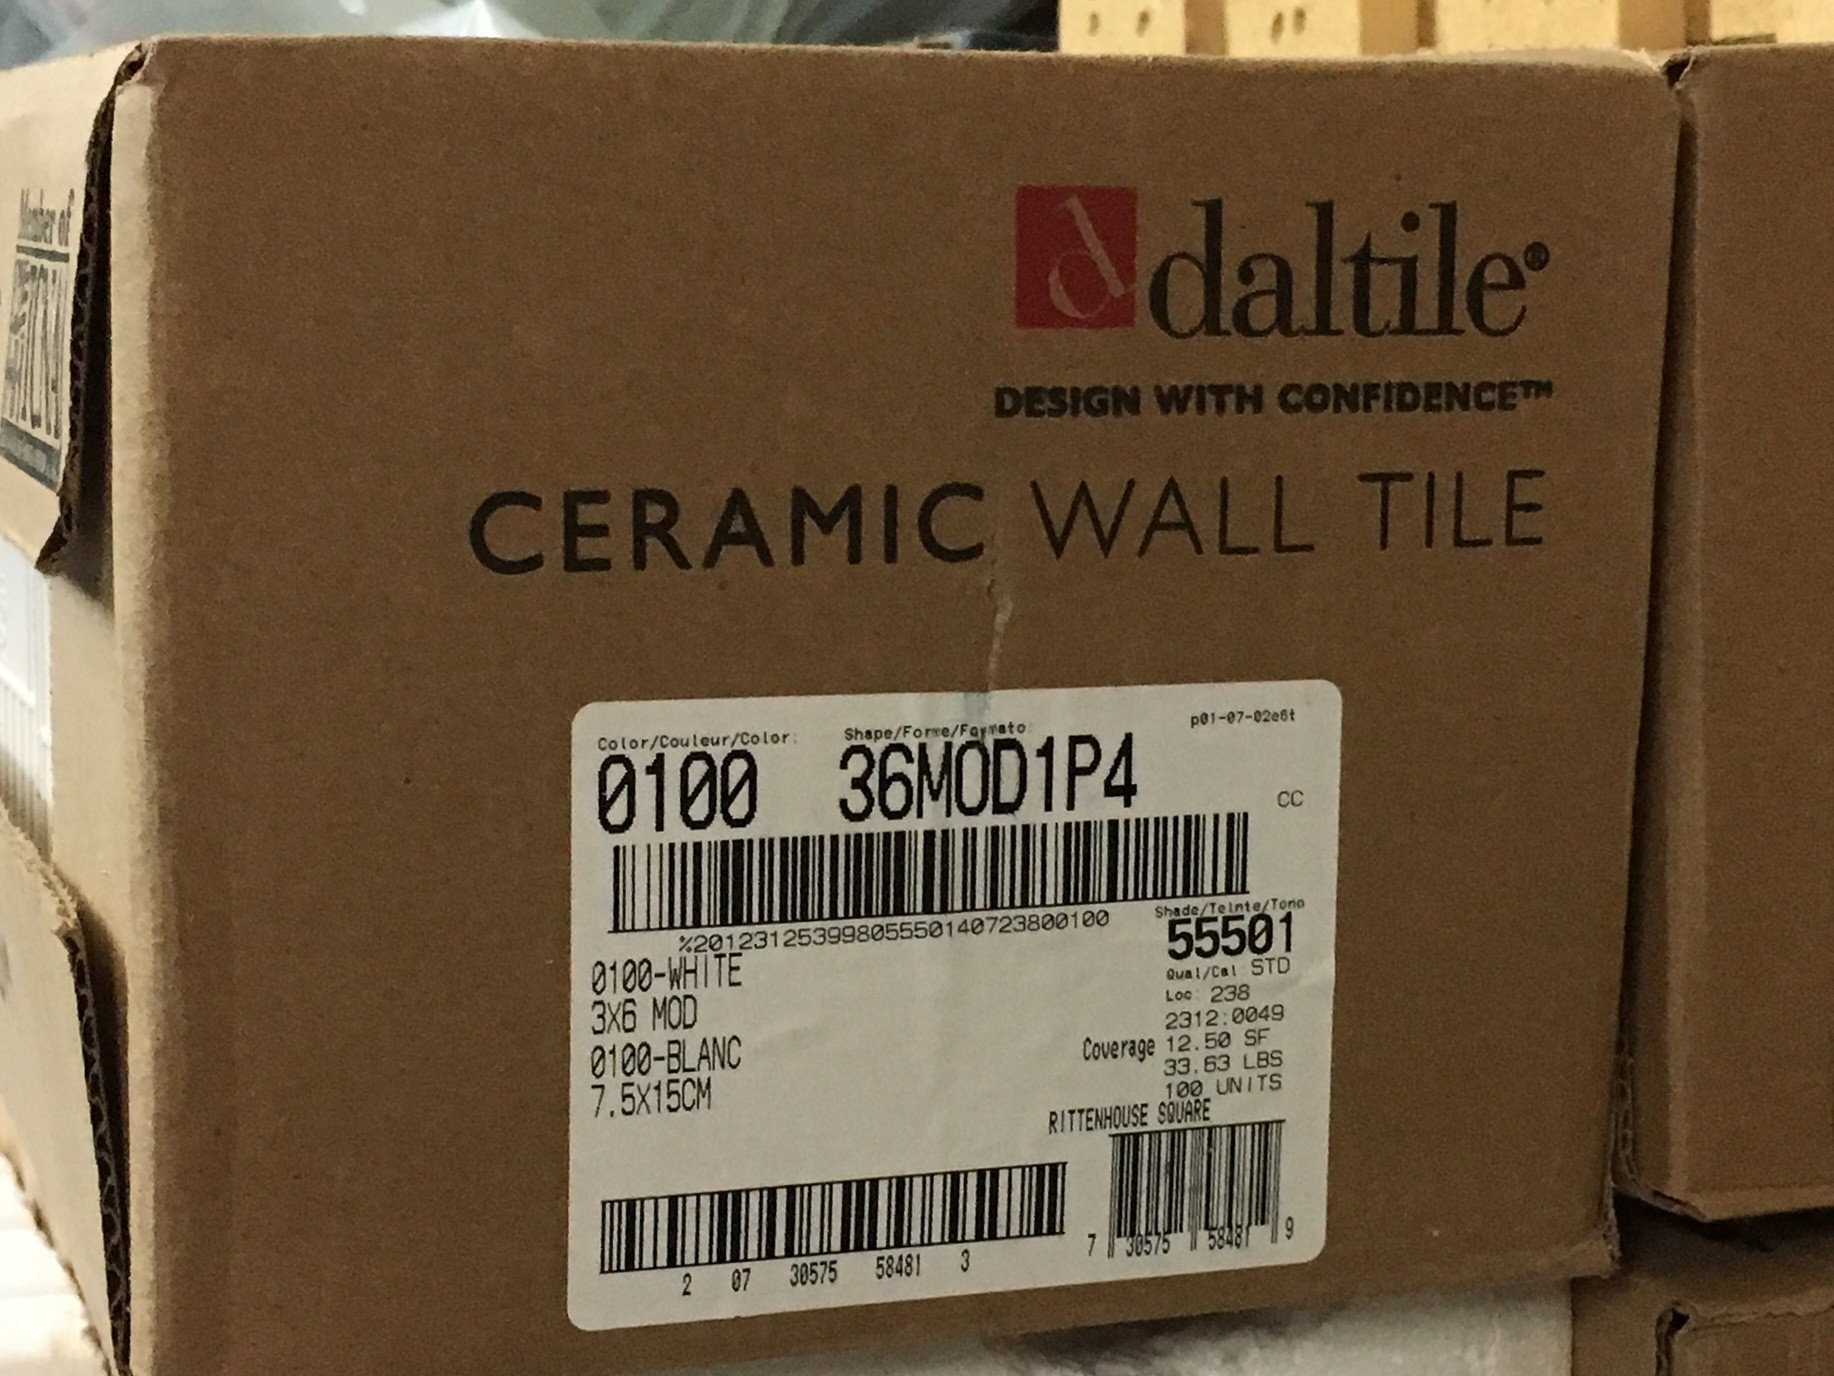 3x6 subway tile daltile period perfect details at any price daltile 3x6 subway tiles white 11 boxes diggerslist details 11 unopened boxes of daltile 3x6 ceramic dailygadgetfo Choice Image